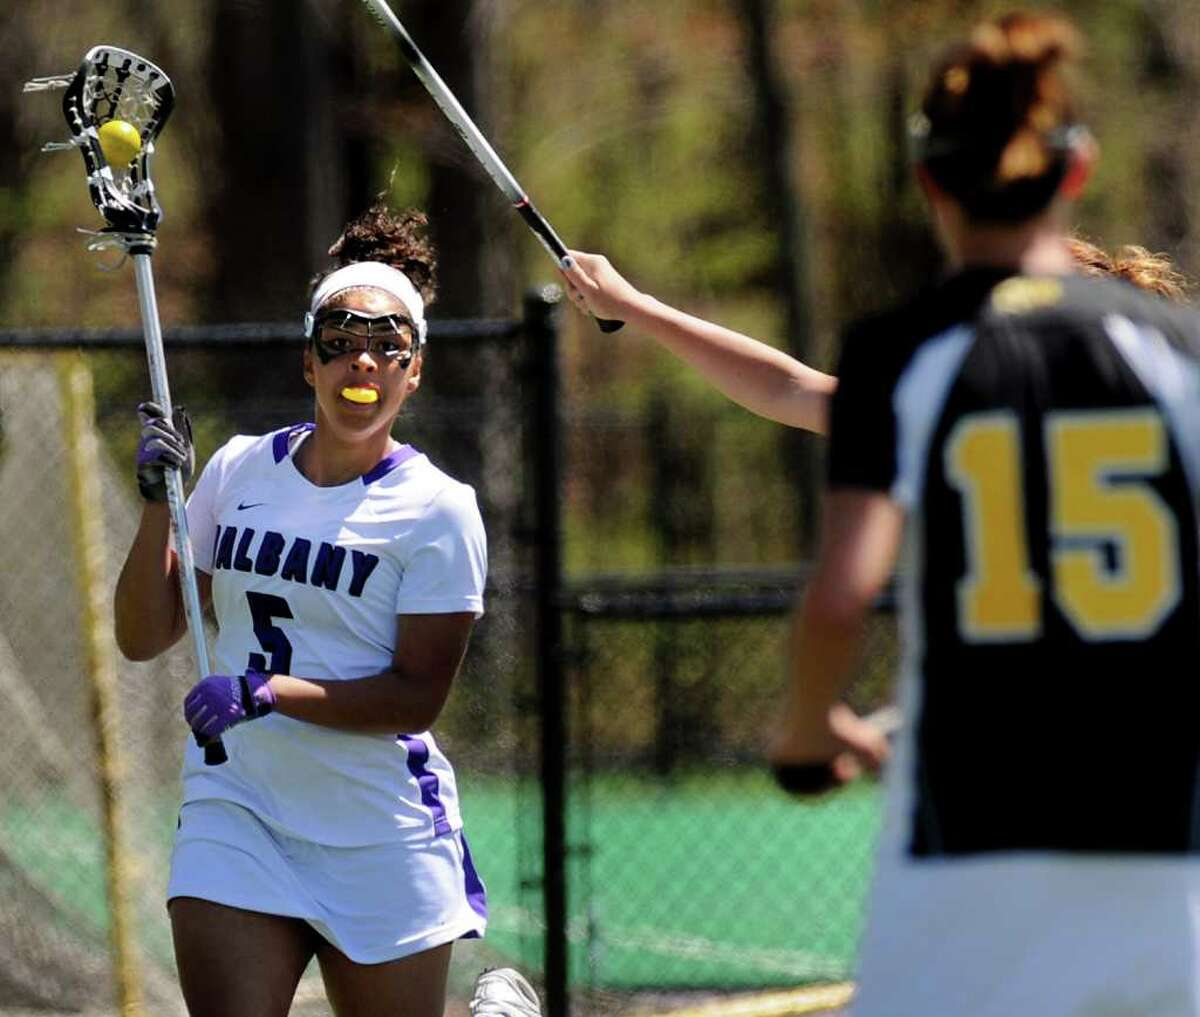 UAlbany's Persy Sample (5), left, controls the ball during their lacrosse game against UMBC on Saturday, April 30, 2011, at UAlbany in Albany, N.Y. (Cindy Schultz / Times Union)